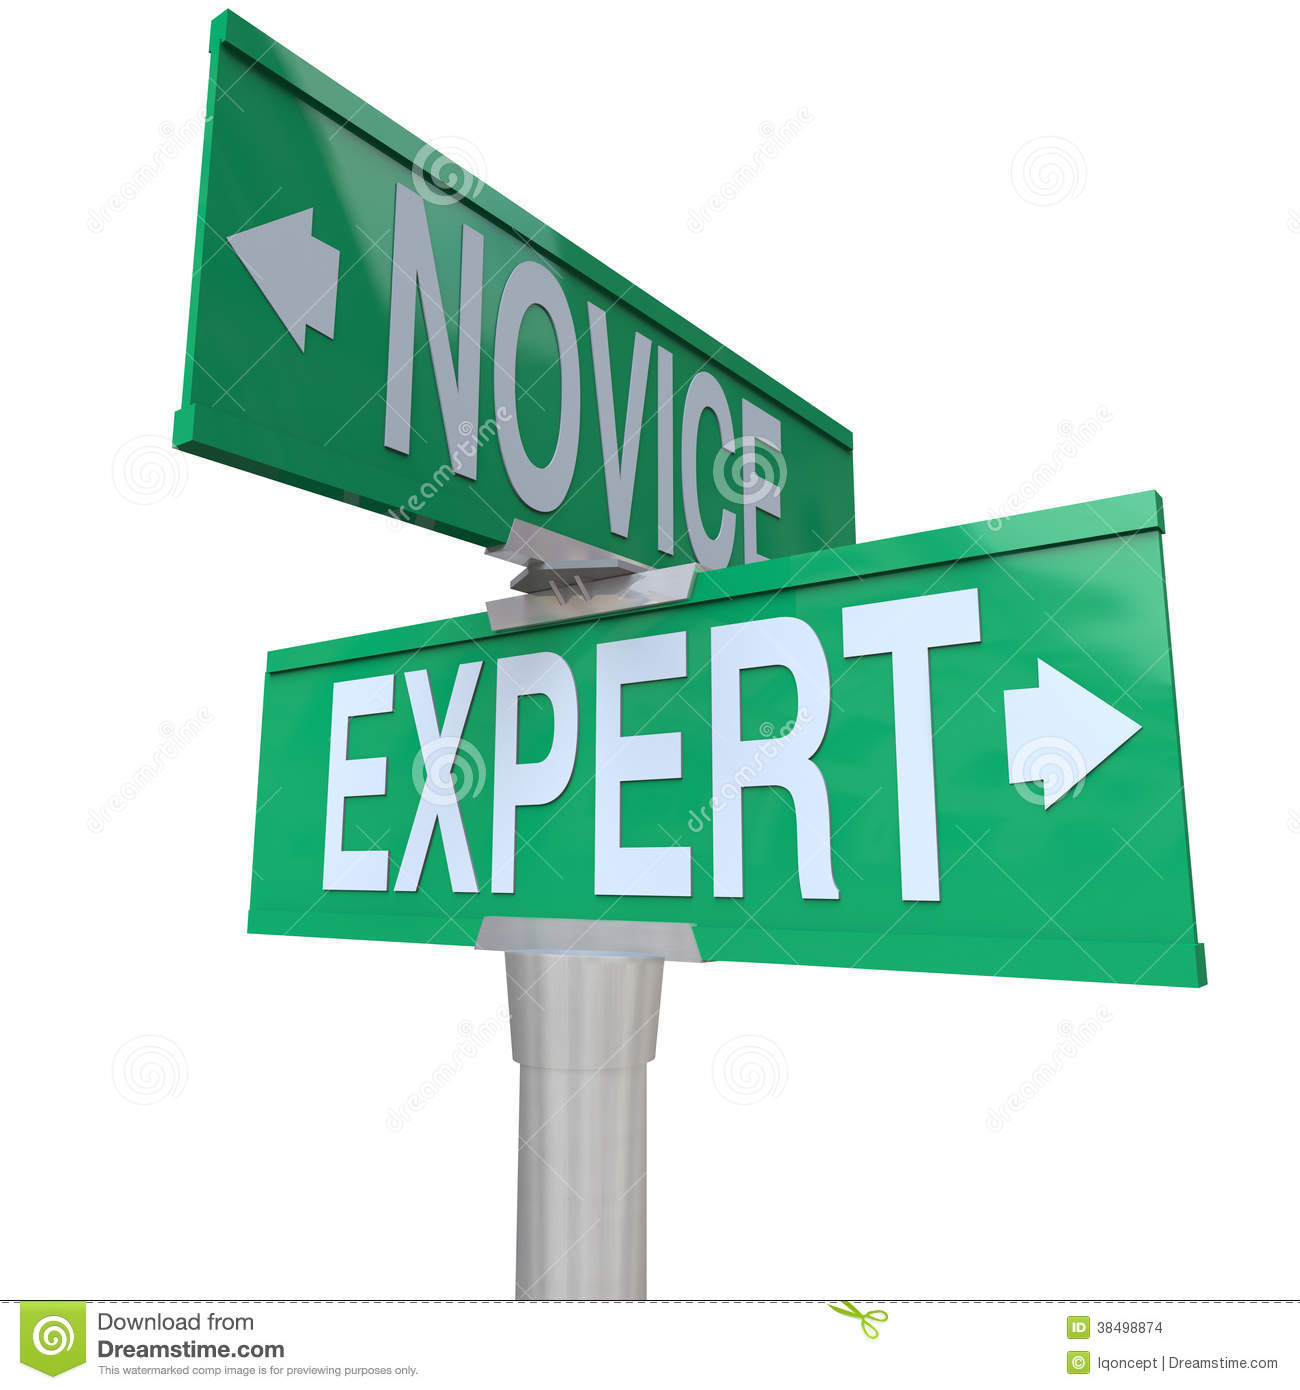 expert vs novice two way road sign skills experience